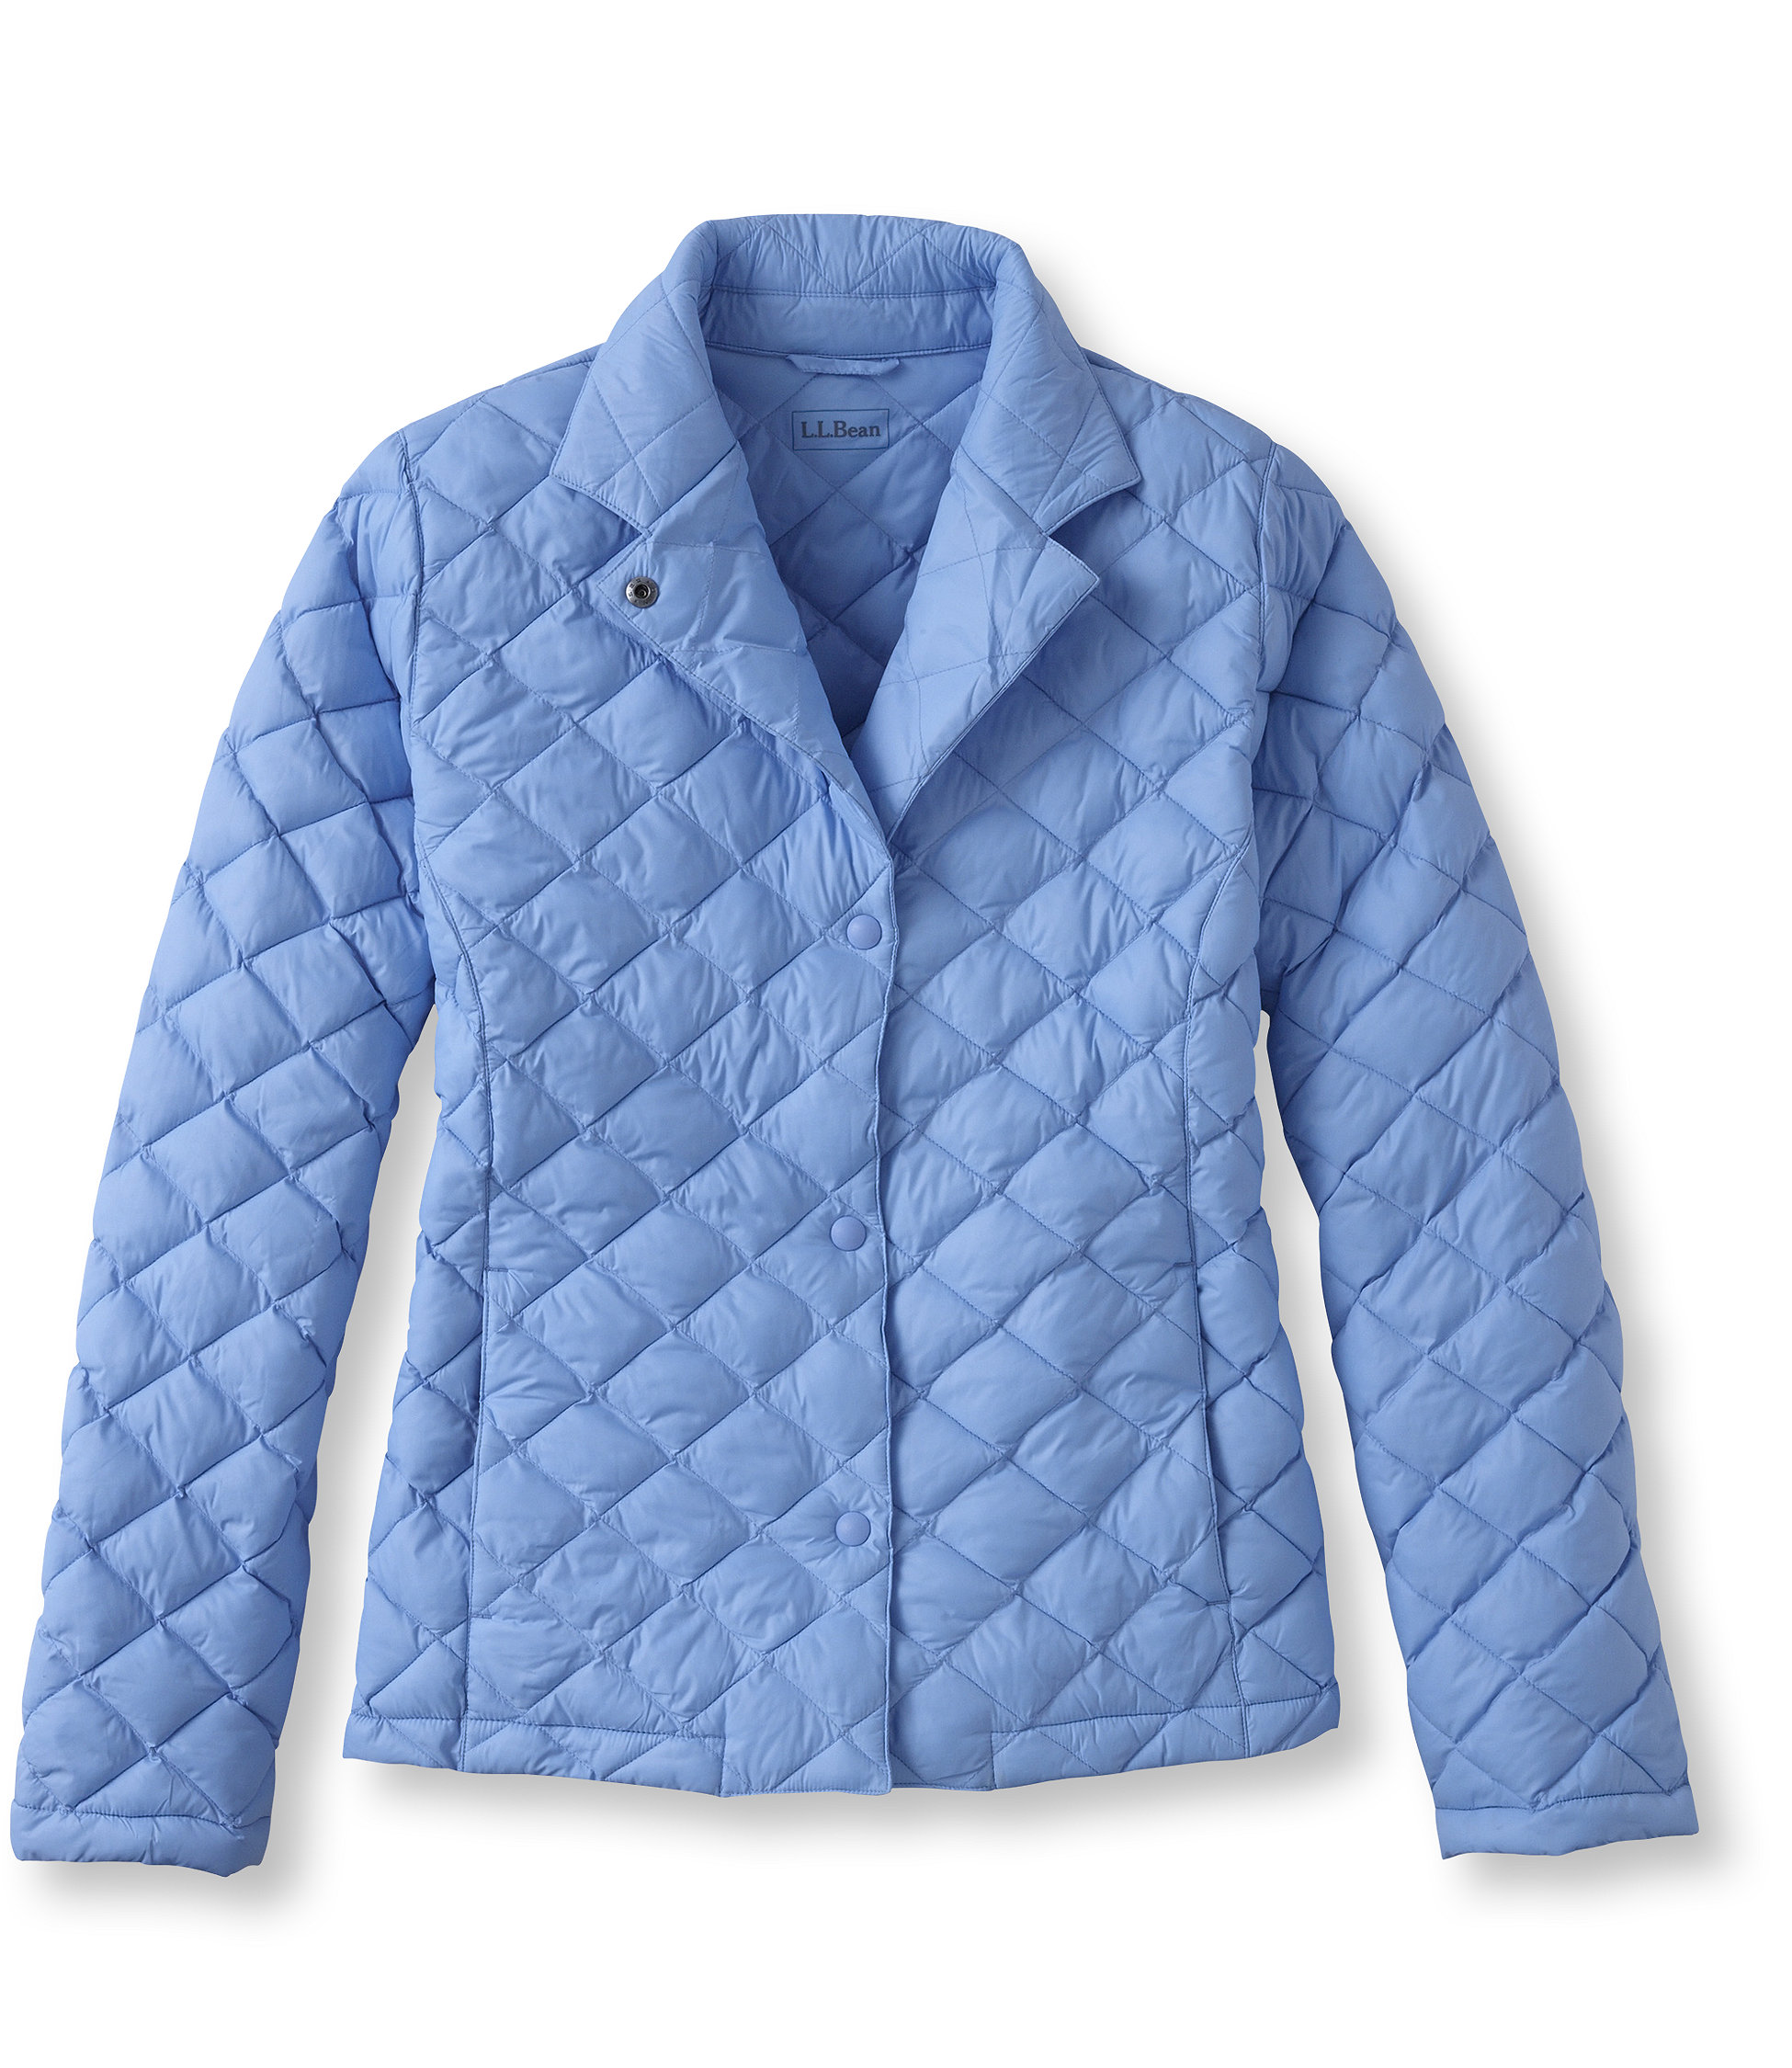 L.L.Bean Bean's Puff Jacket